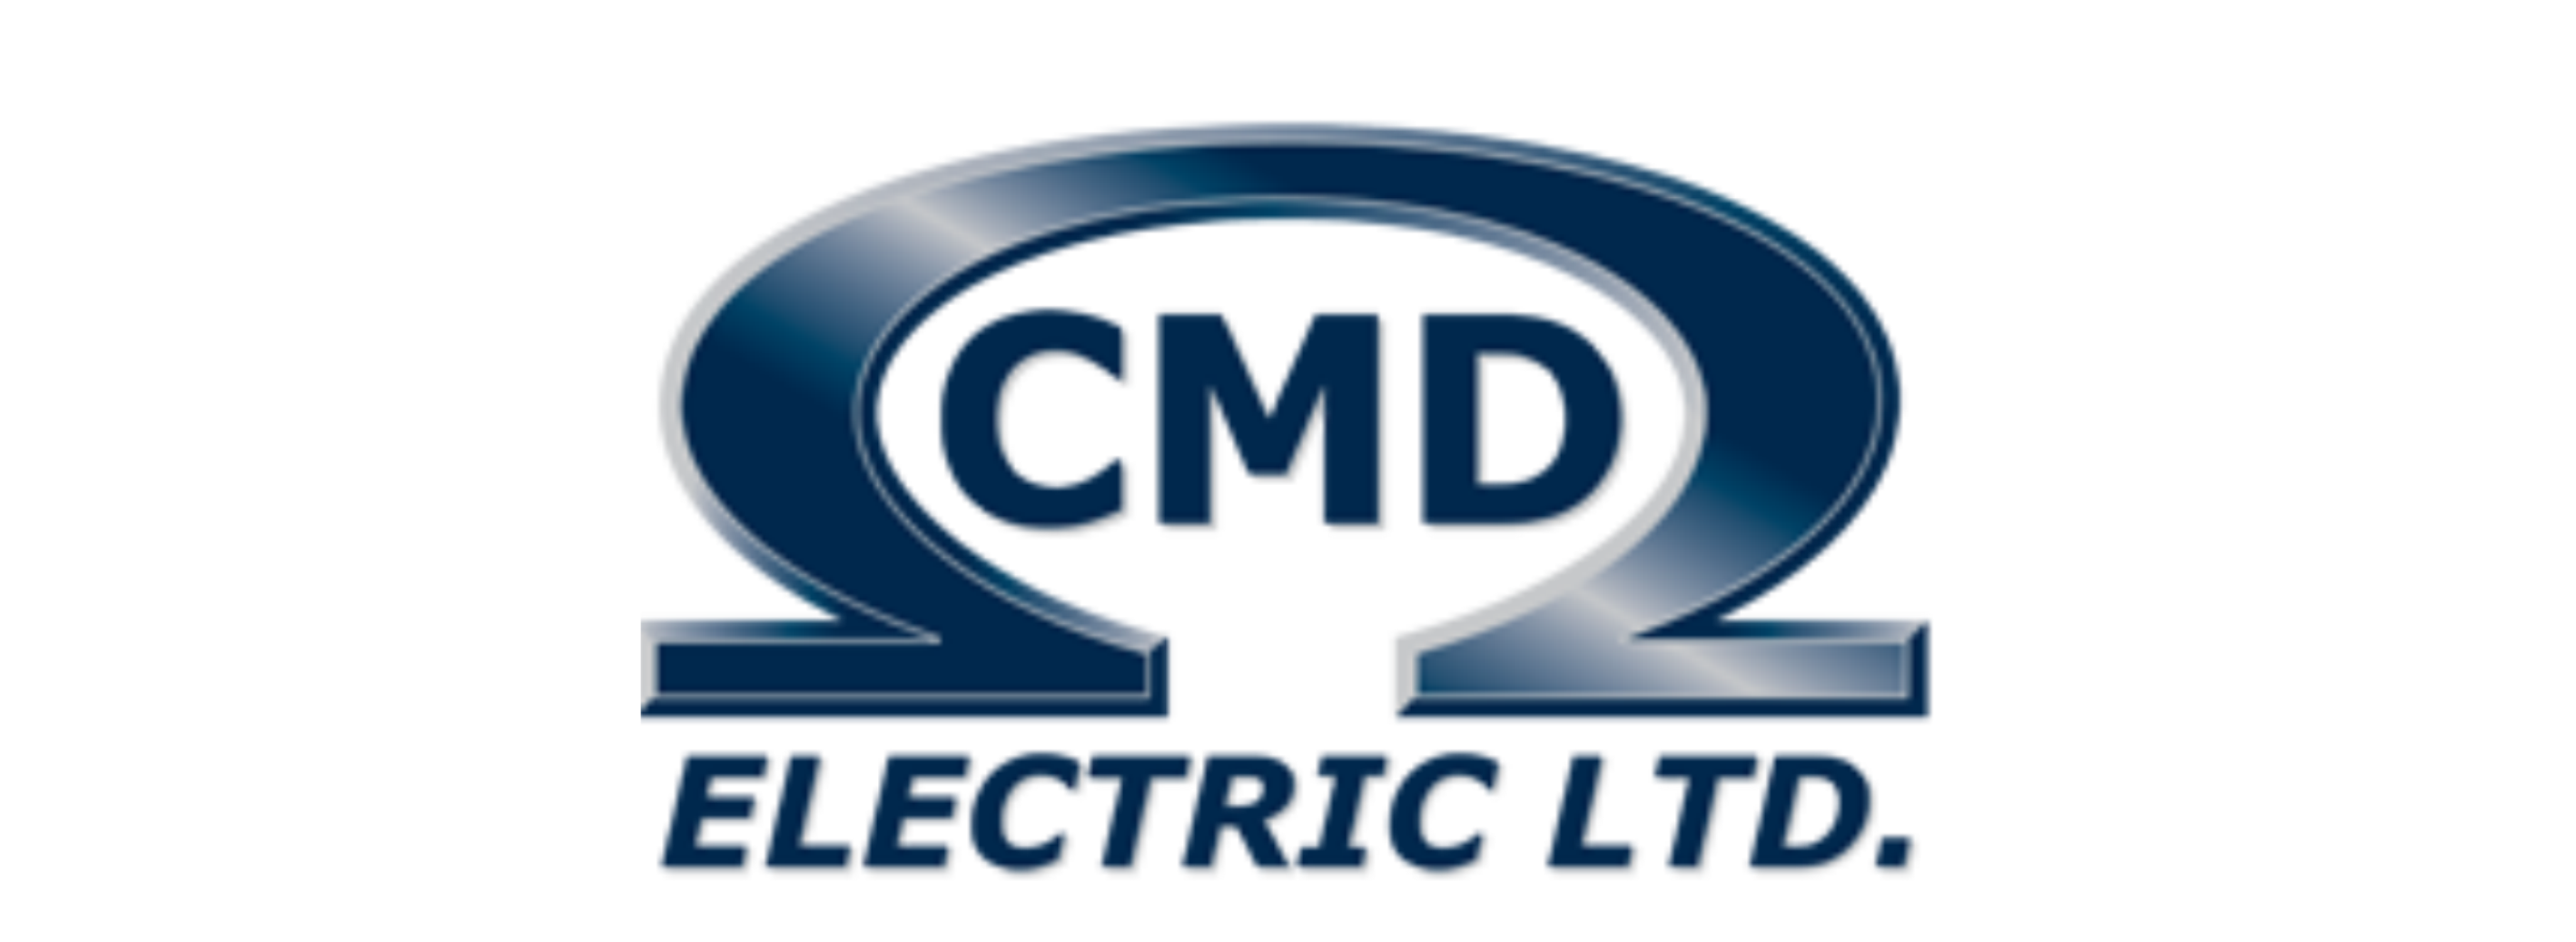 The CMD Electric Ltd logo